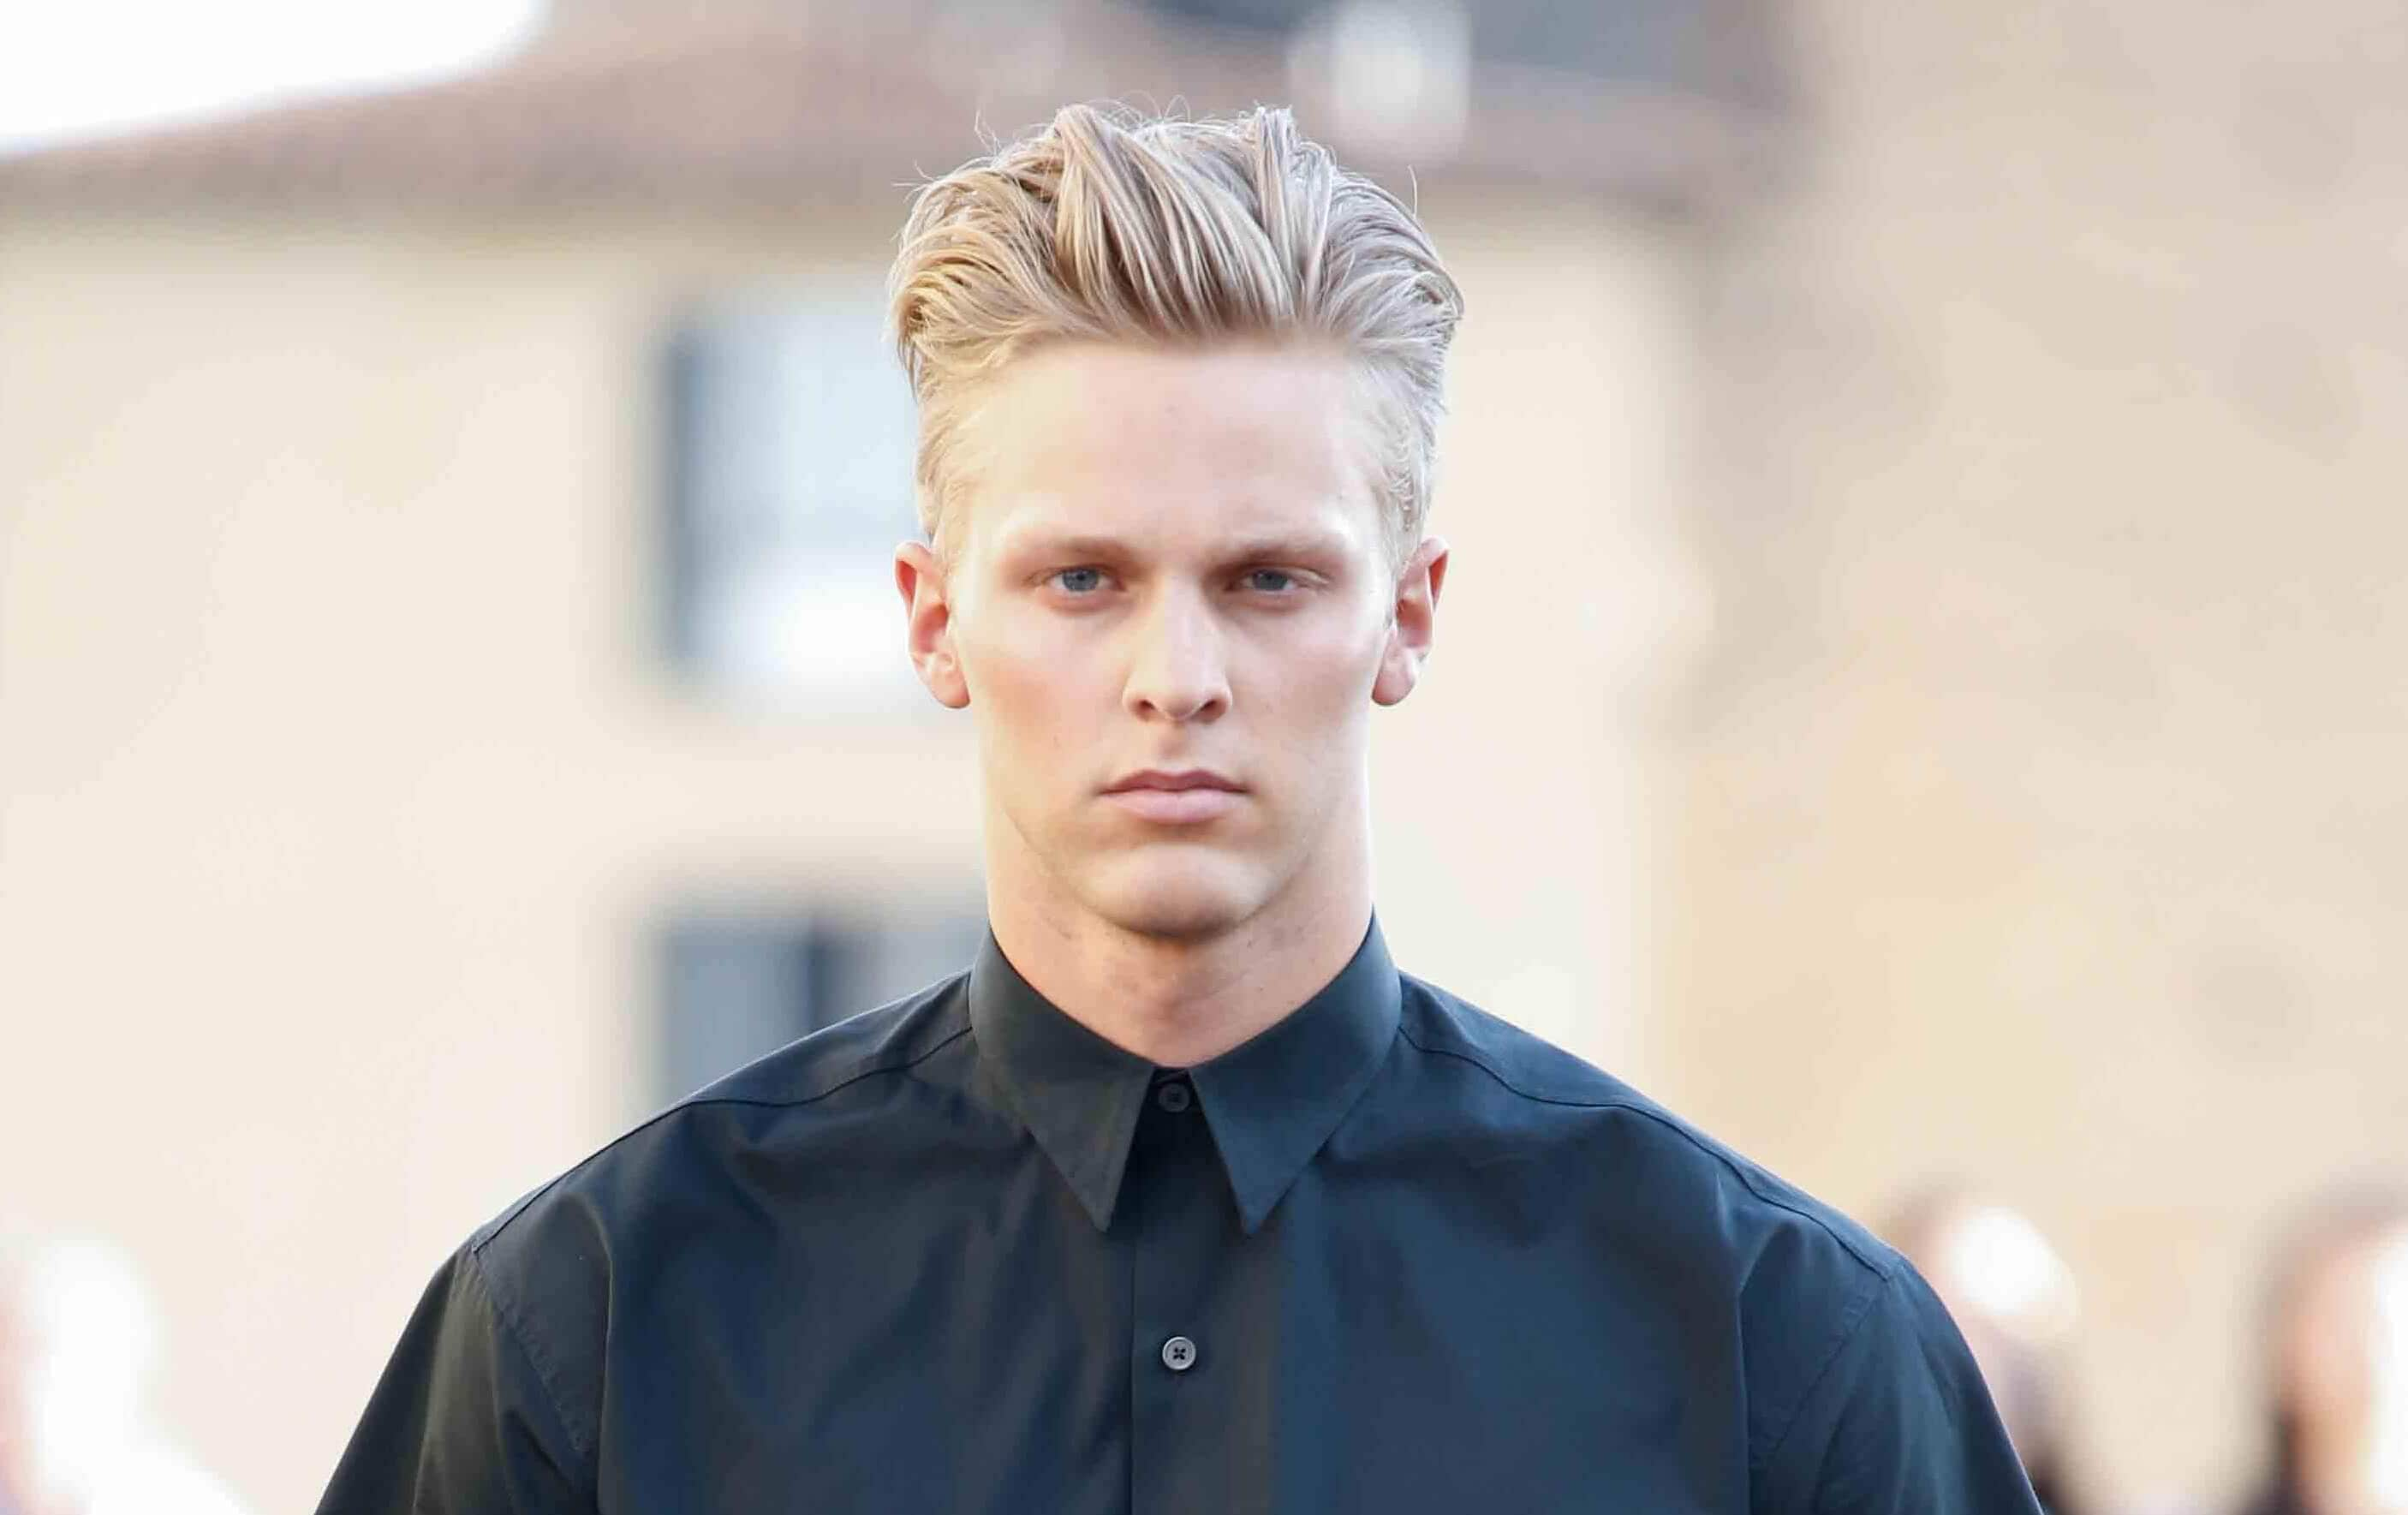 Cool Undercut Hairstyles You Should Try Now